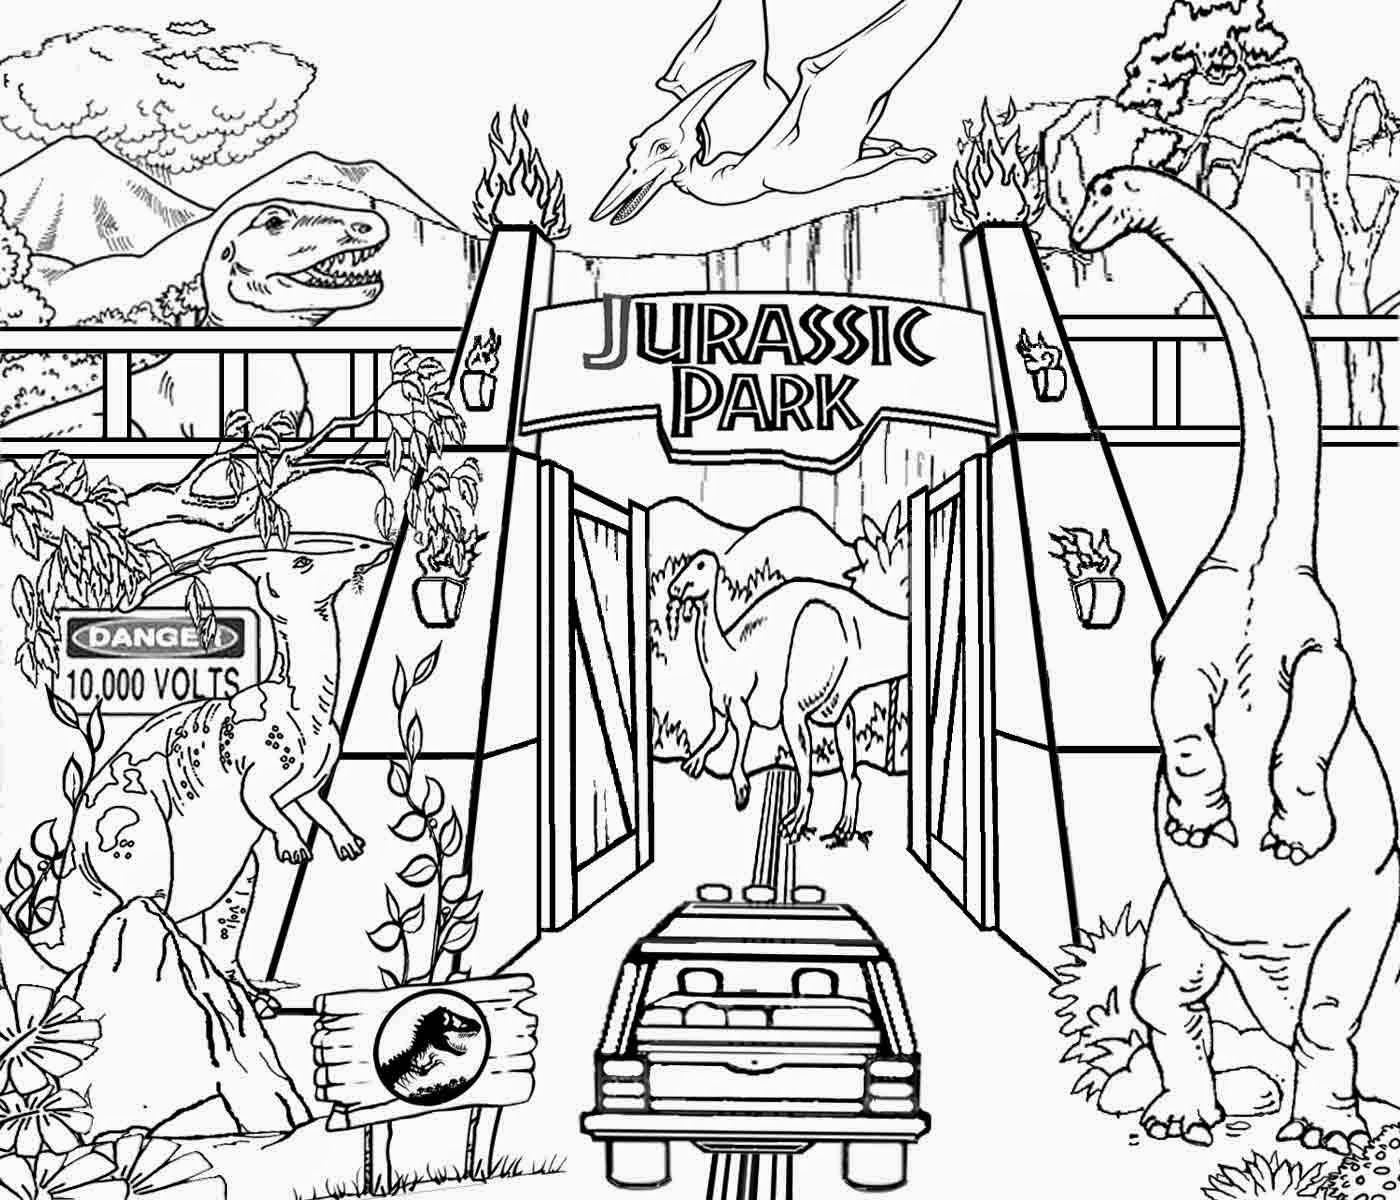 Free coloring pages dinosaurs - Detailed Printable High Resolution Free Clipart Jurassic Park Dinosaur Coloring Pages For Older Kids